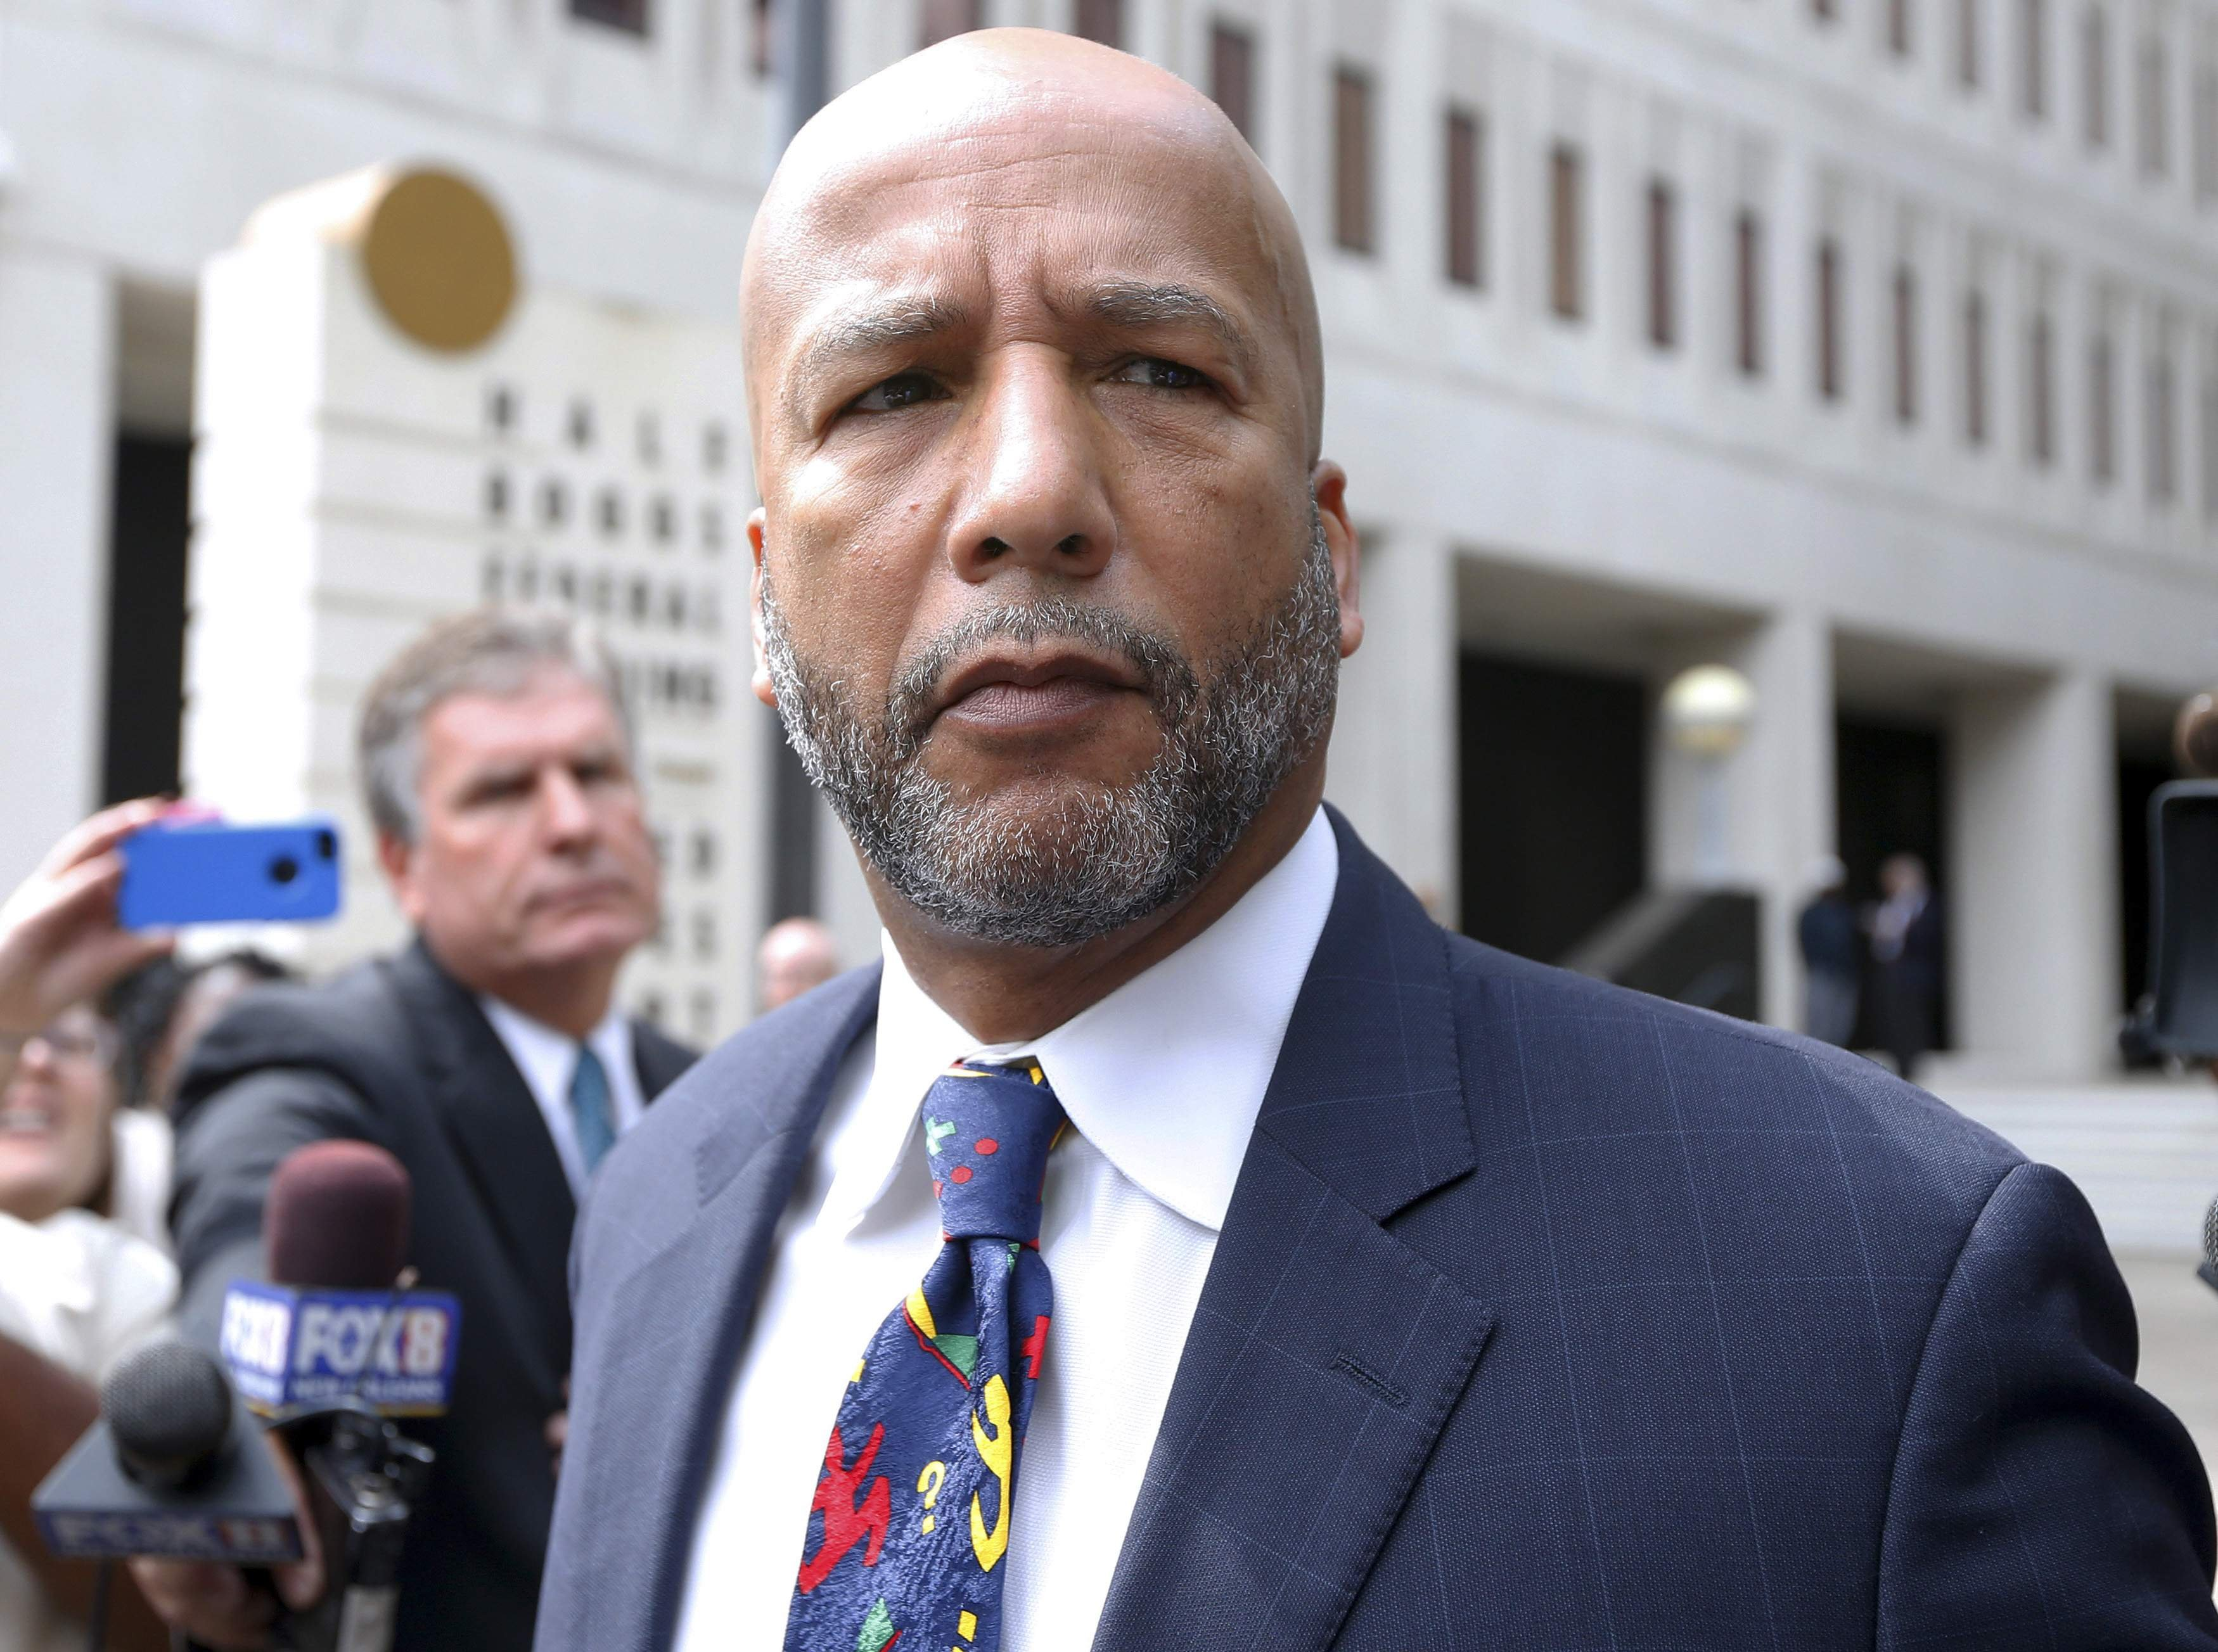 Former New Orleans Mayor C. Ray Nagin leaves court after being sentenced to 10 years in New Orleans, Louisiana July 9, 2014.